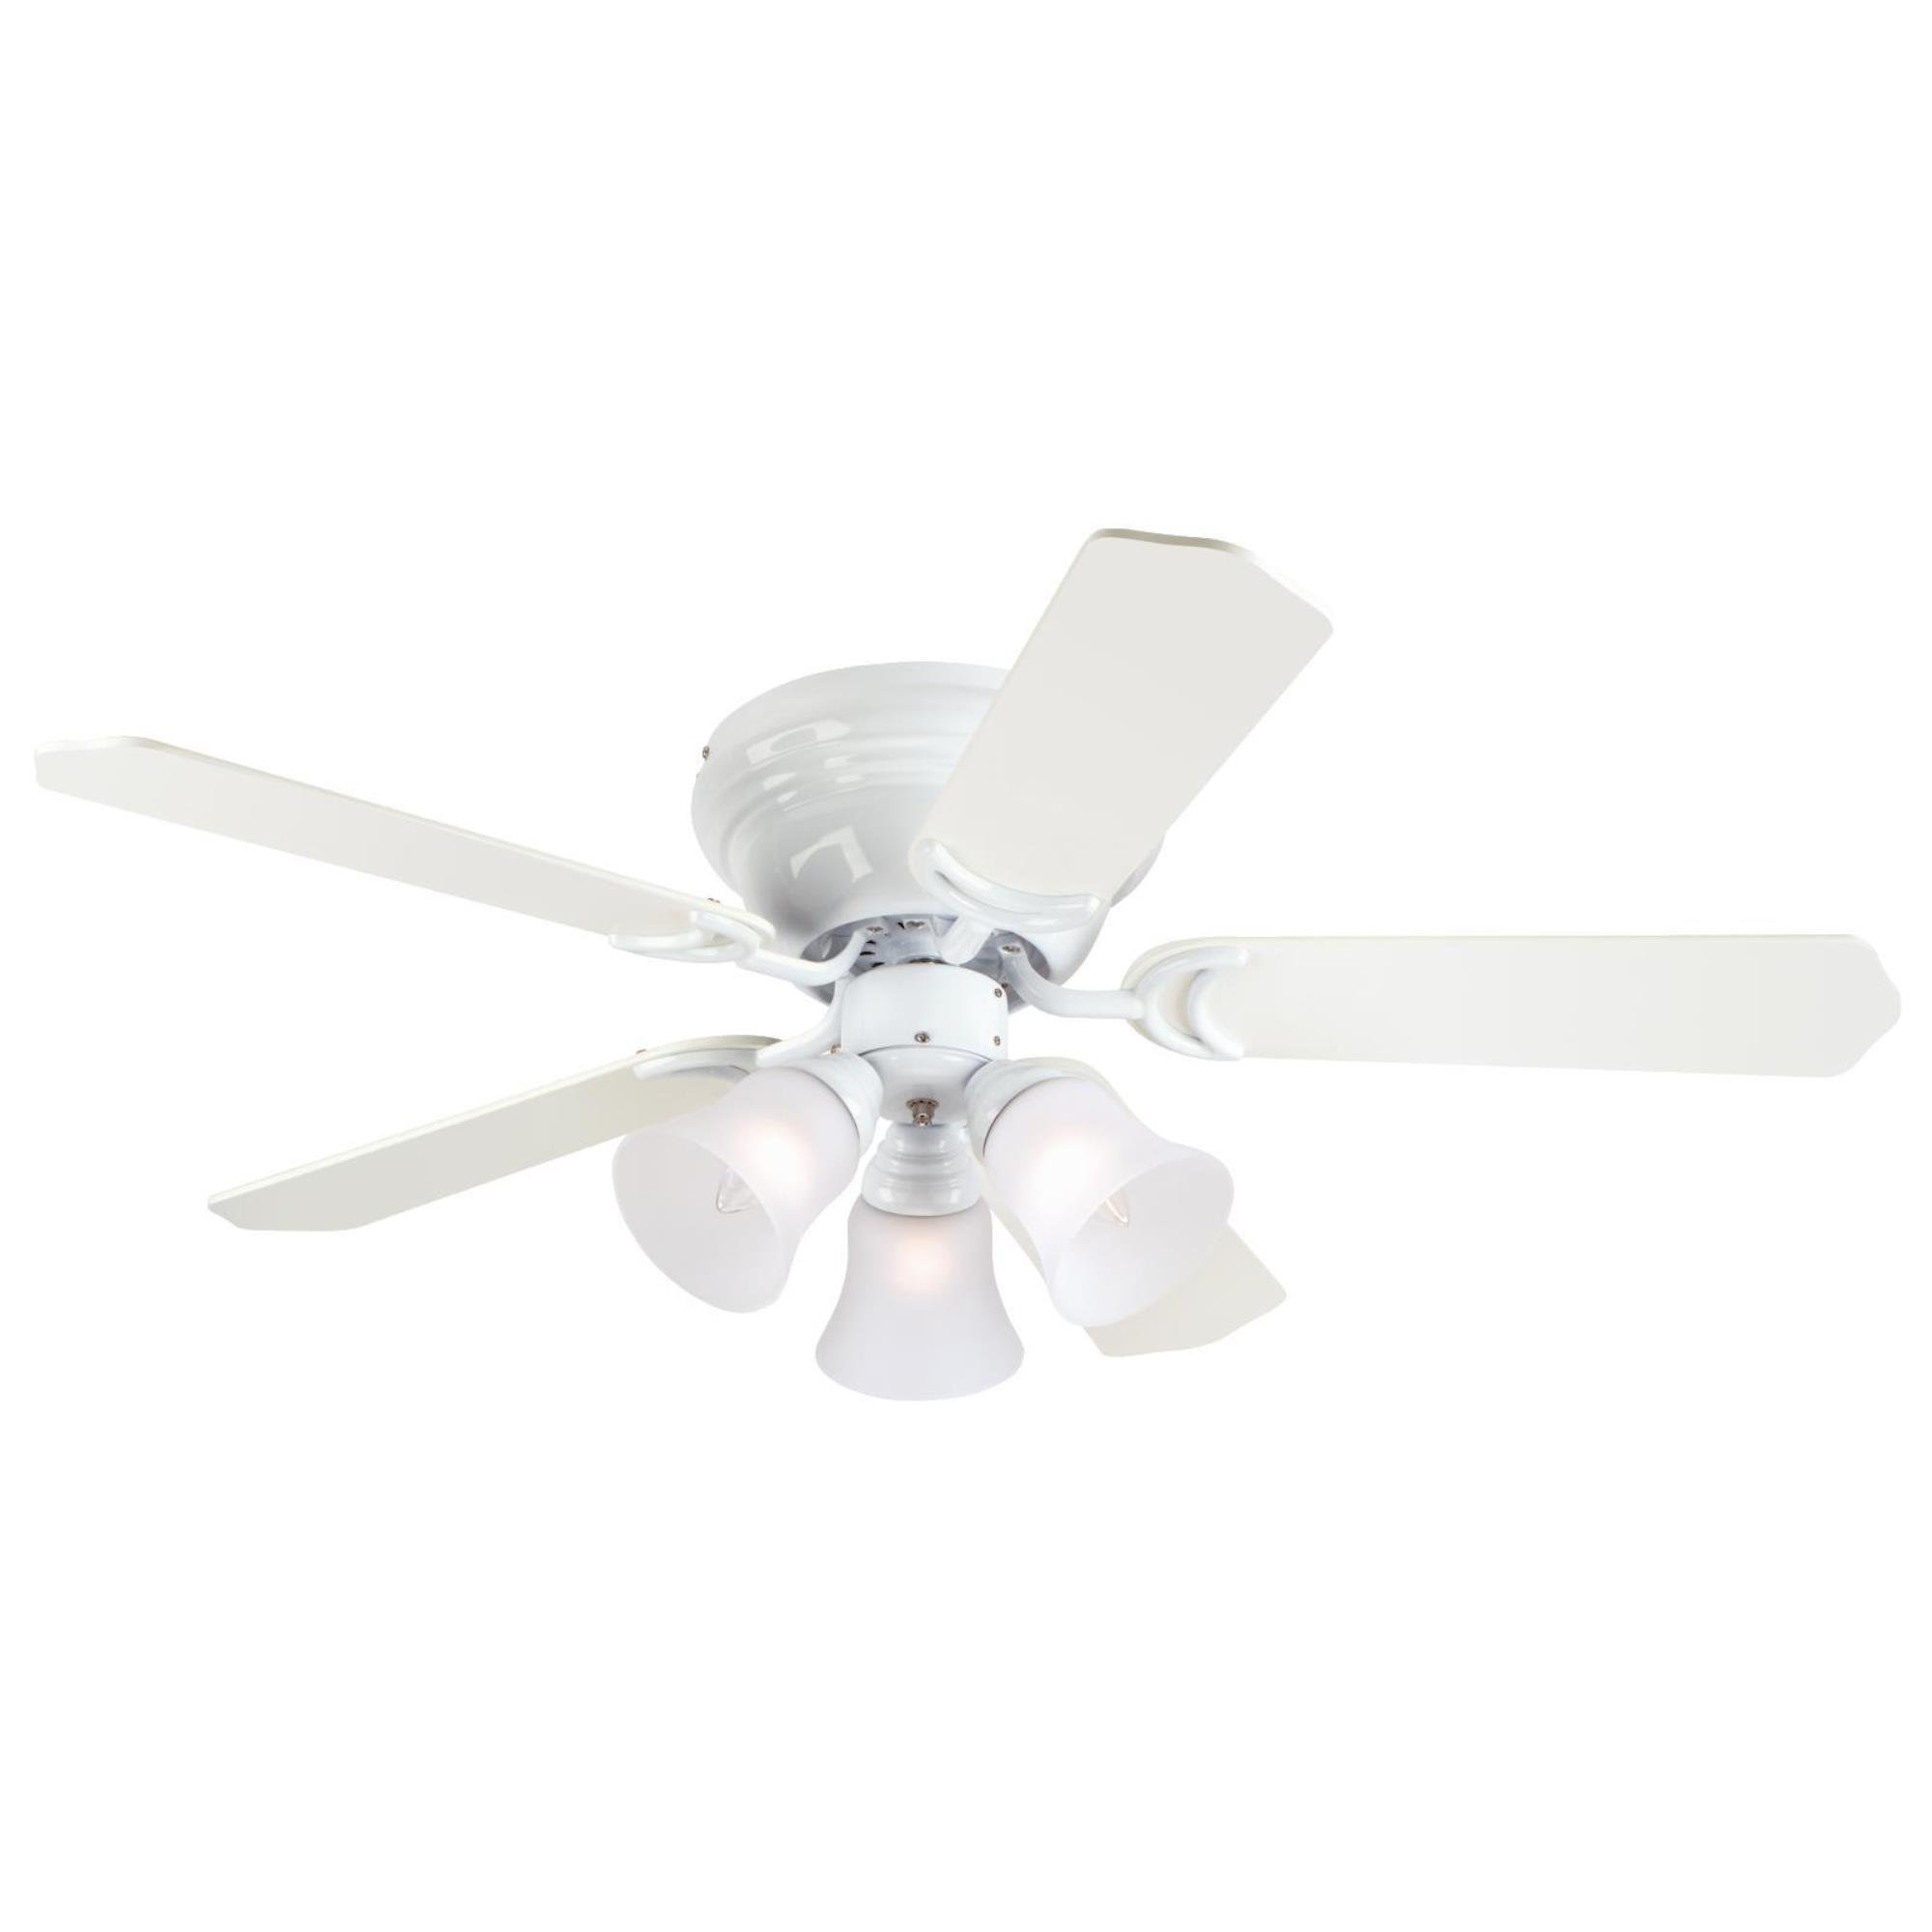 tag sawdust cleaner and painting blades fan fans saltwater ceiling